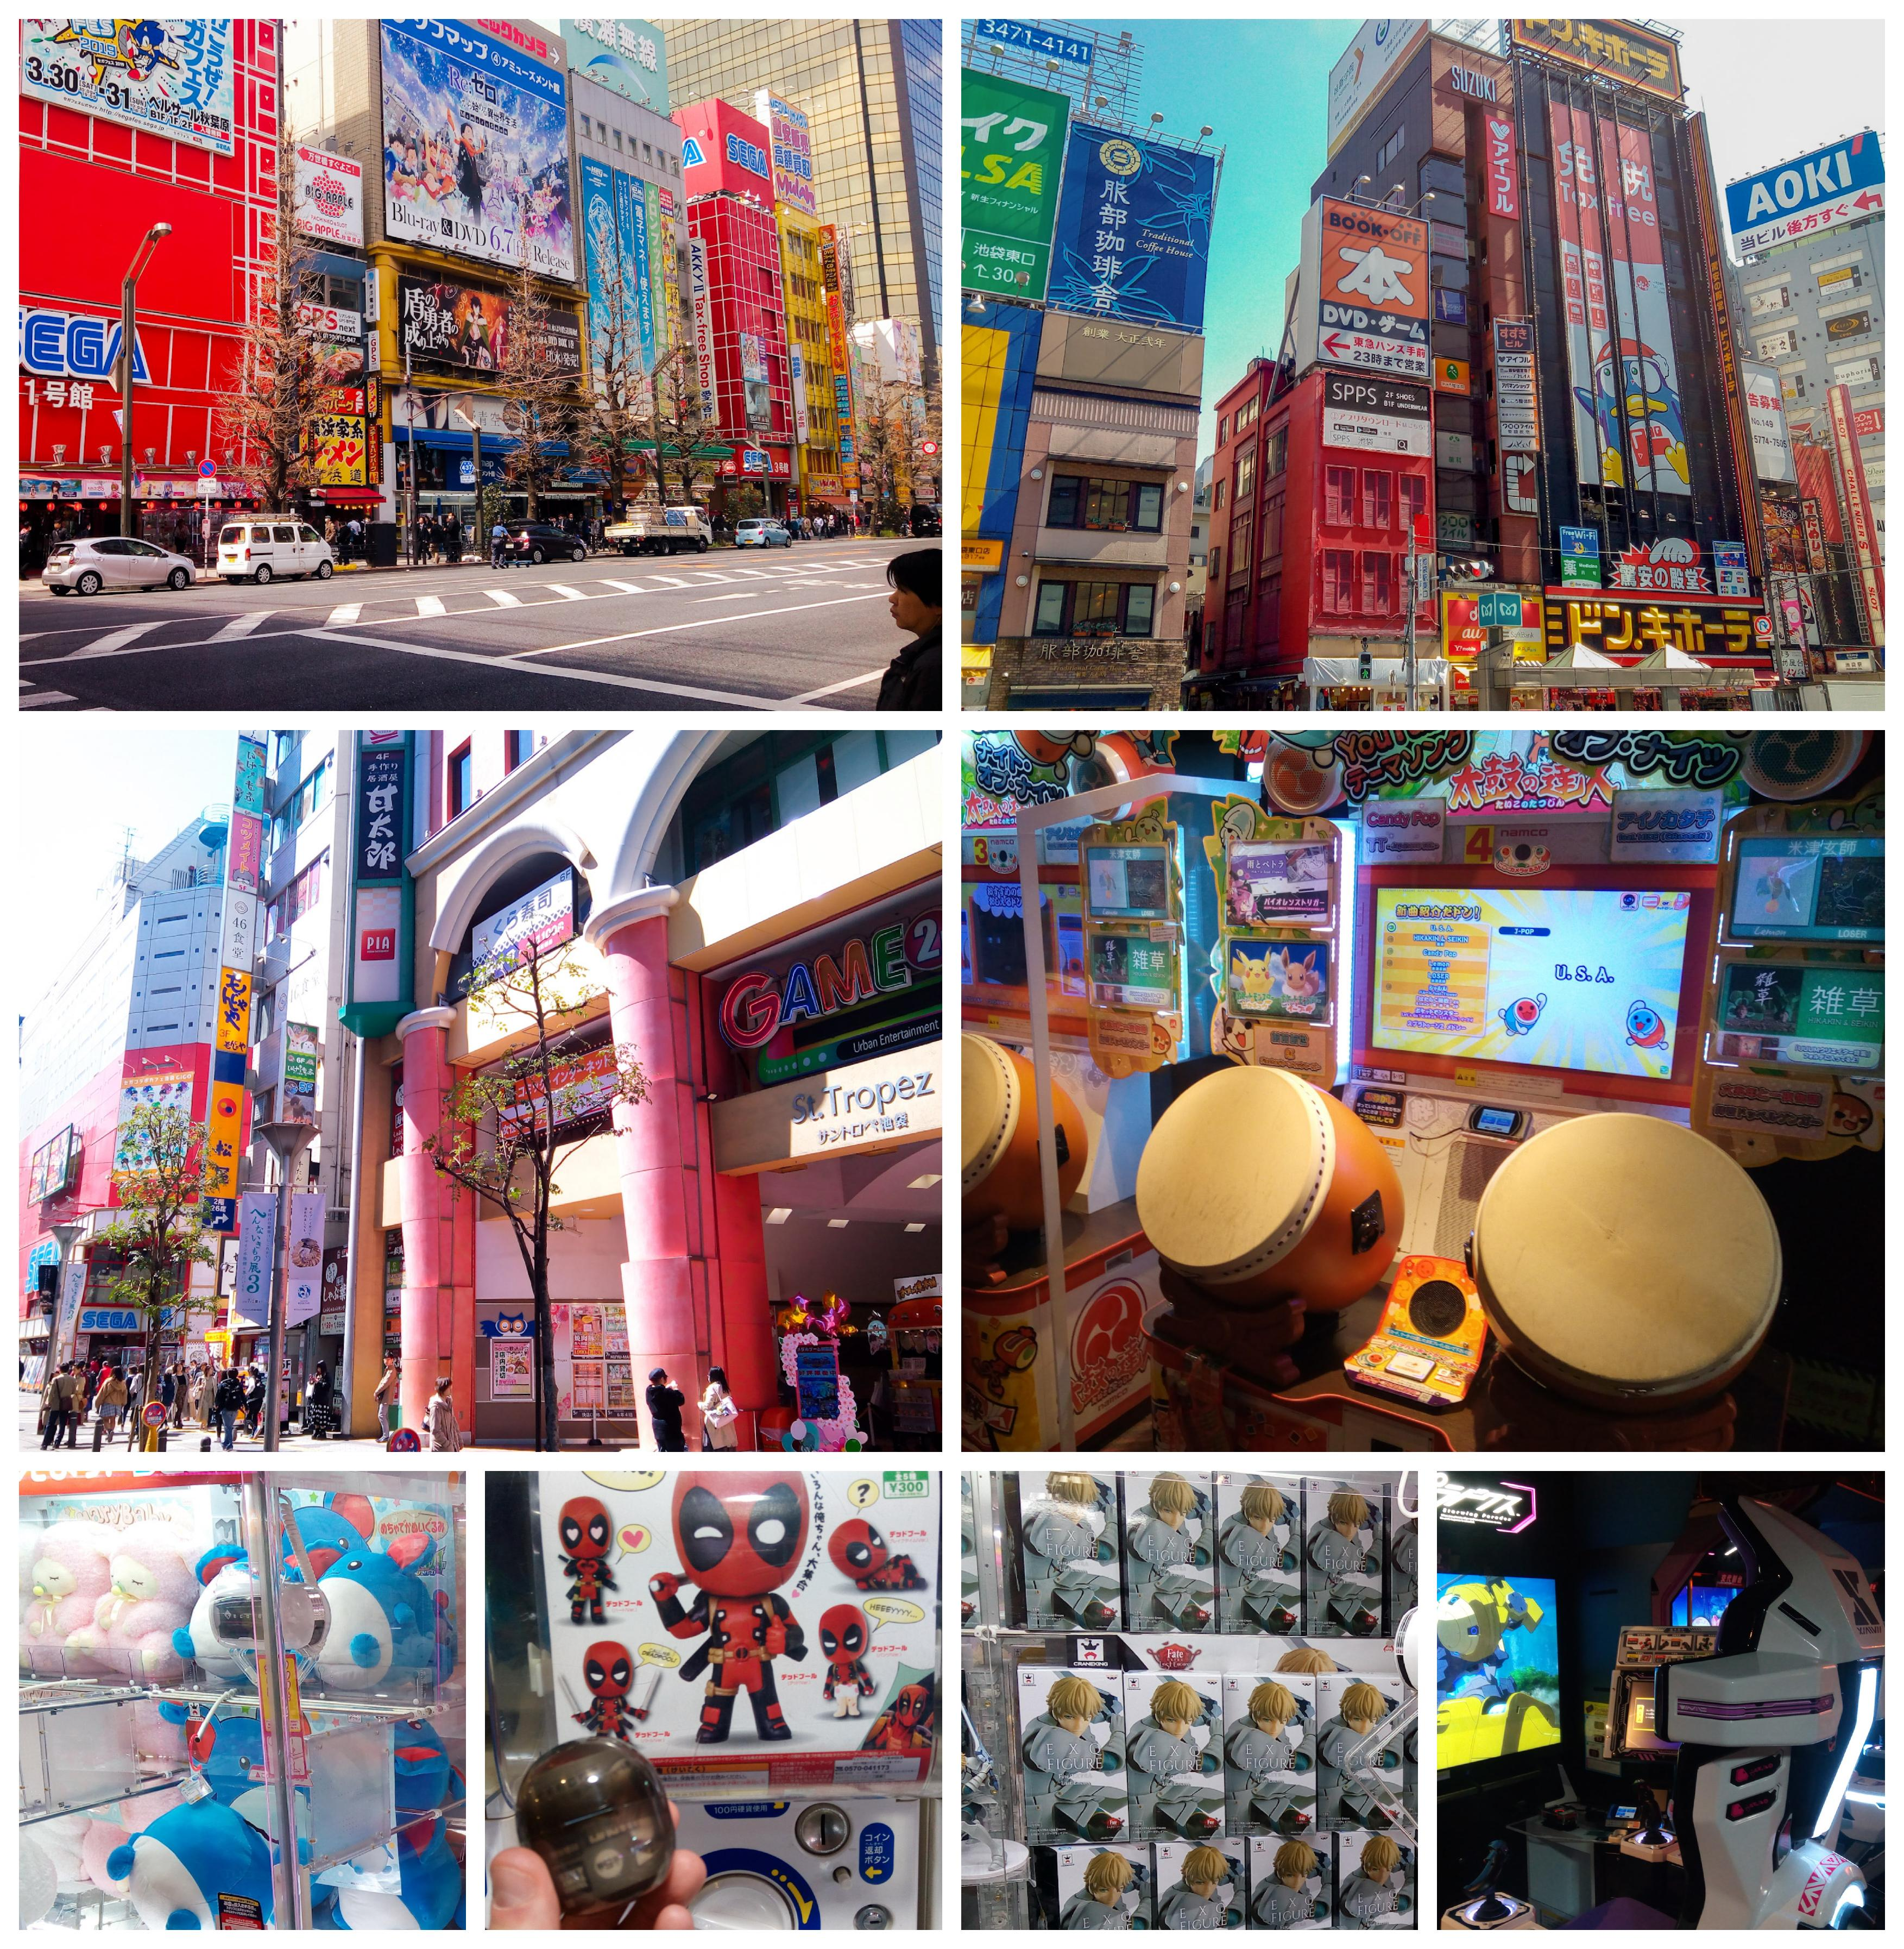 Urban Photos - Chiyoda and Toshima, Tokyo, Japan. 'Akihabara and Ikebukuro.' Akihabara, in the Chiyoda district of Tokyo, is the area to head if you are interested in anime and manga, whether you're just a casual fan of the art (from Studio Ghibli to Akira), or an 'Otaku' (anime / manga obsessive). Along with Ikebukuro (quickly growing as a center for all things anime and manga), these areas are a shrine to Modern Japanese art, in all its stunning craziness. Akihabara is also a Mecca for anything electronic. Anything digital, from cameras, to drones, to games consoles, Akihabara has it. After WW2, it gained the nickname Denki Gai 'Electic Town,' and it still lives up to that name today. sketchbookexplorer.com @davidasutton @sketchbookexplorer Facebook.com/davidanthonysutton #japan #tokyo #chiyoda #akihabara #toshima #ikebukuro #travel #travelblog #photography #cheeryblossom #cherryblossomseason